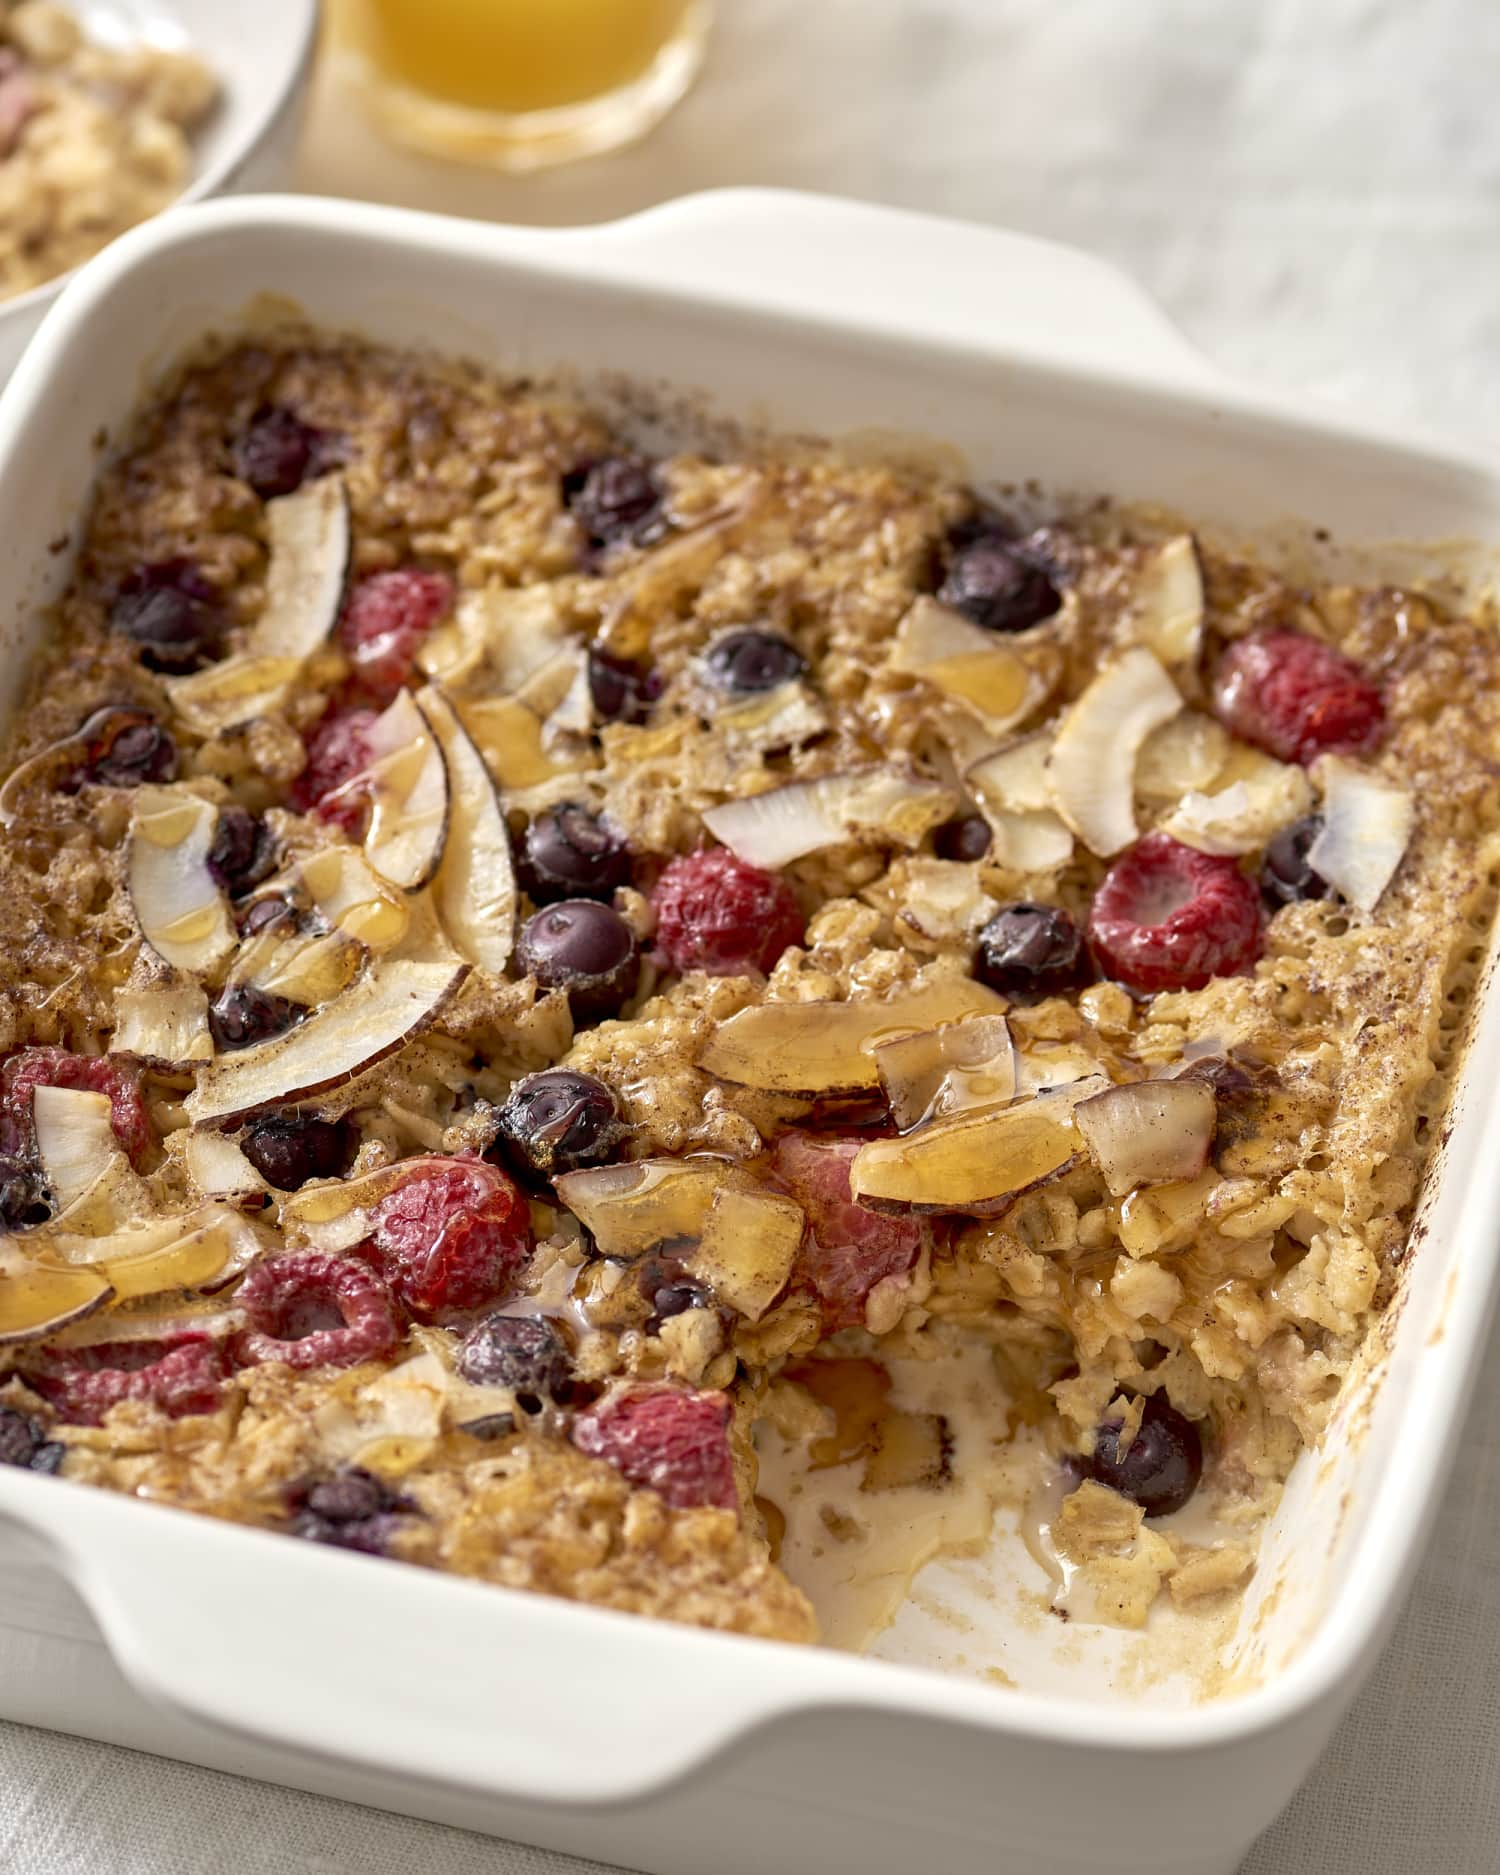 Healthy Baked Oatmeal: The Easiest Make-Ahead Method | Kitchn